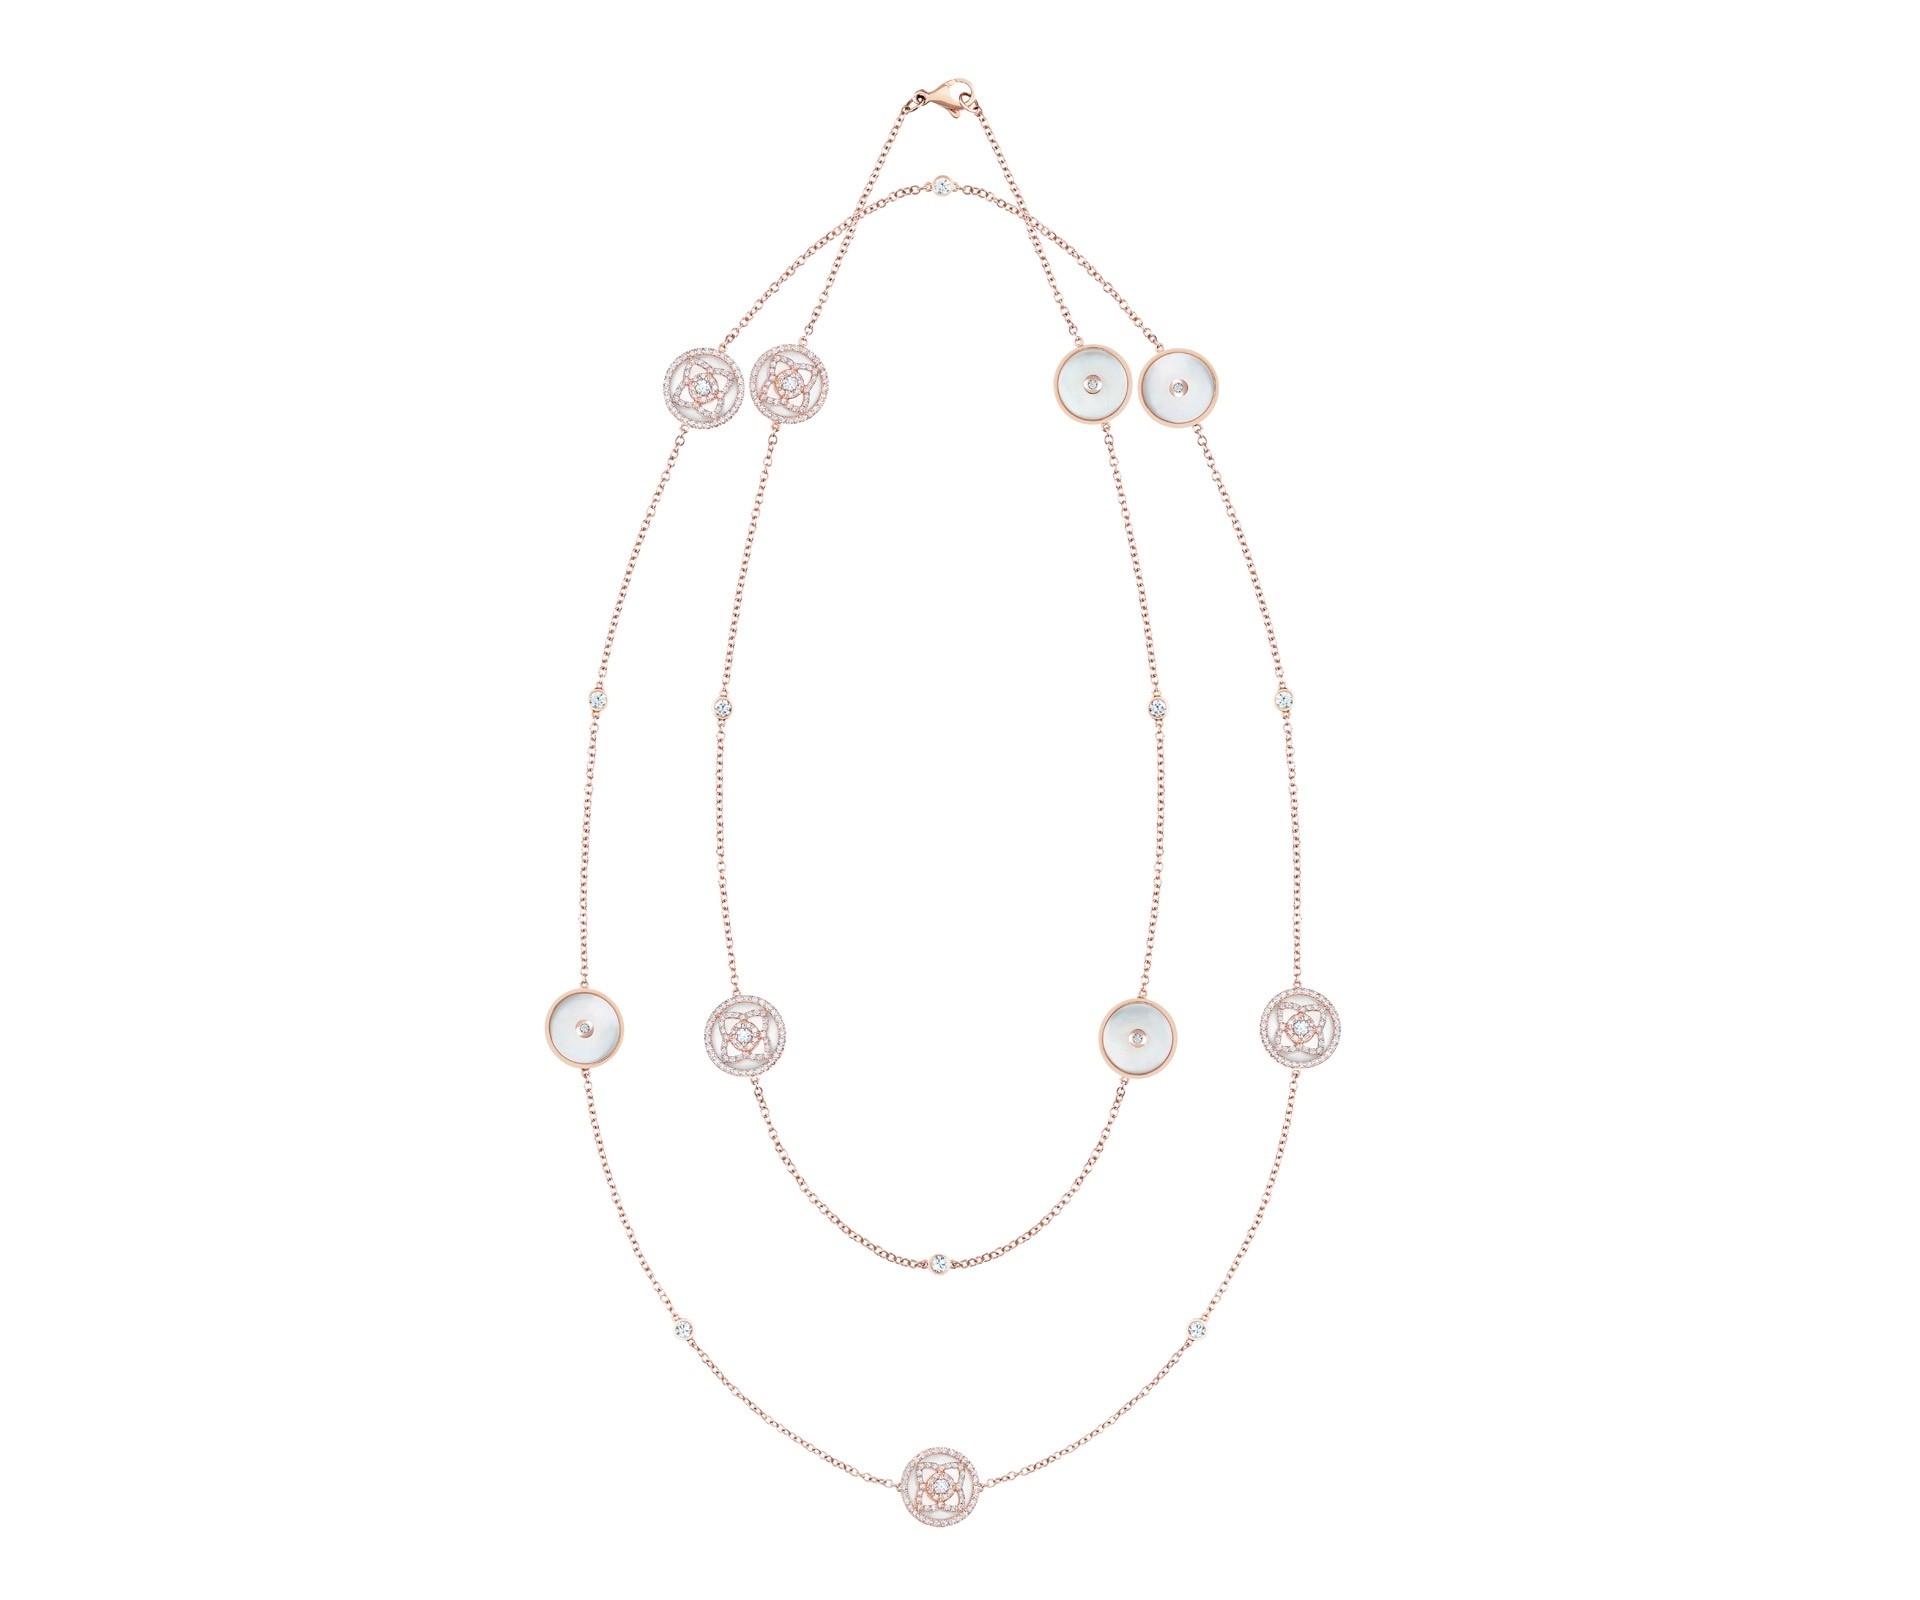 Enchanted Lotus Rose Gold & White Mother Of Pearl Sautoir Necklace With Regard To Most Popular White Gold Diamond Sautoir Necklaces (View 5 of 25)